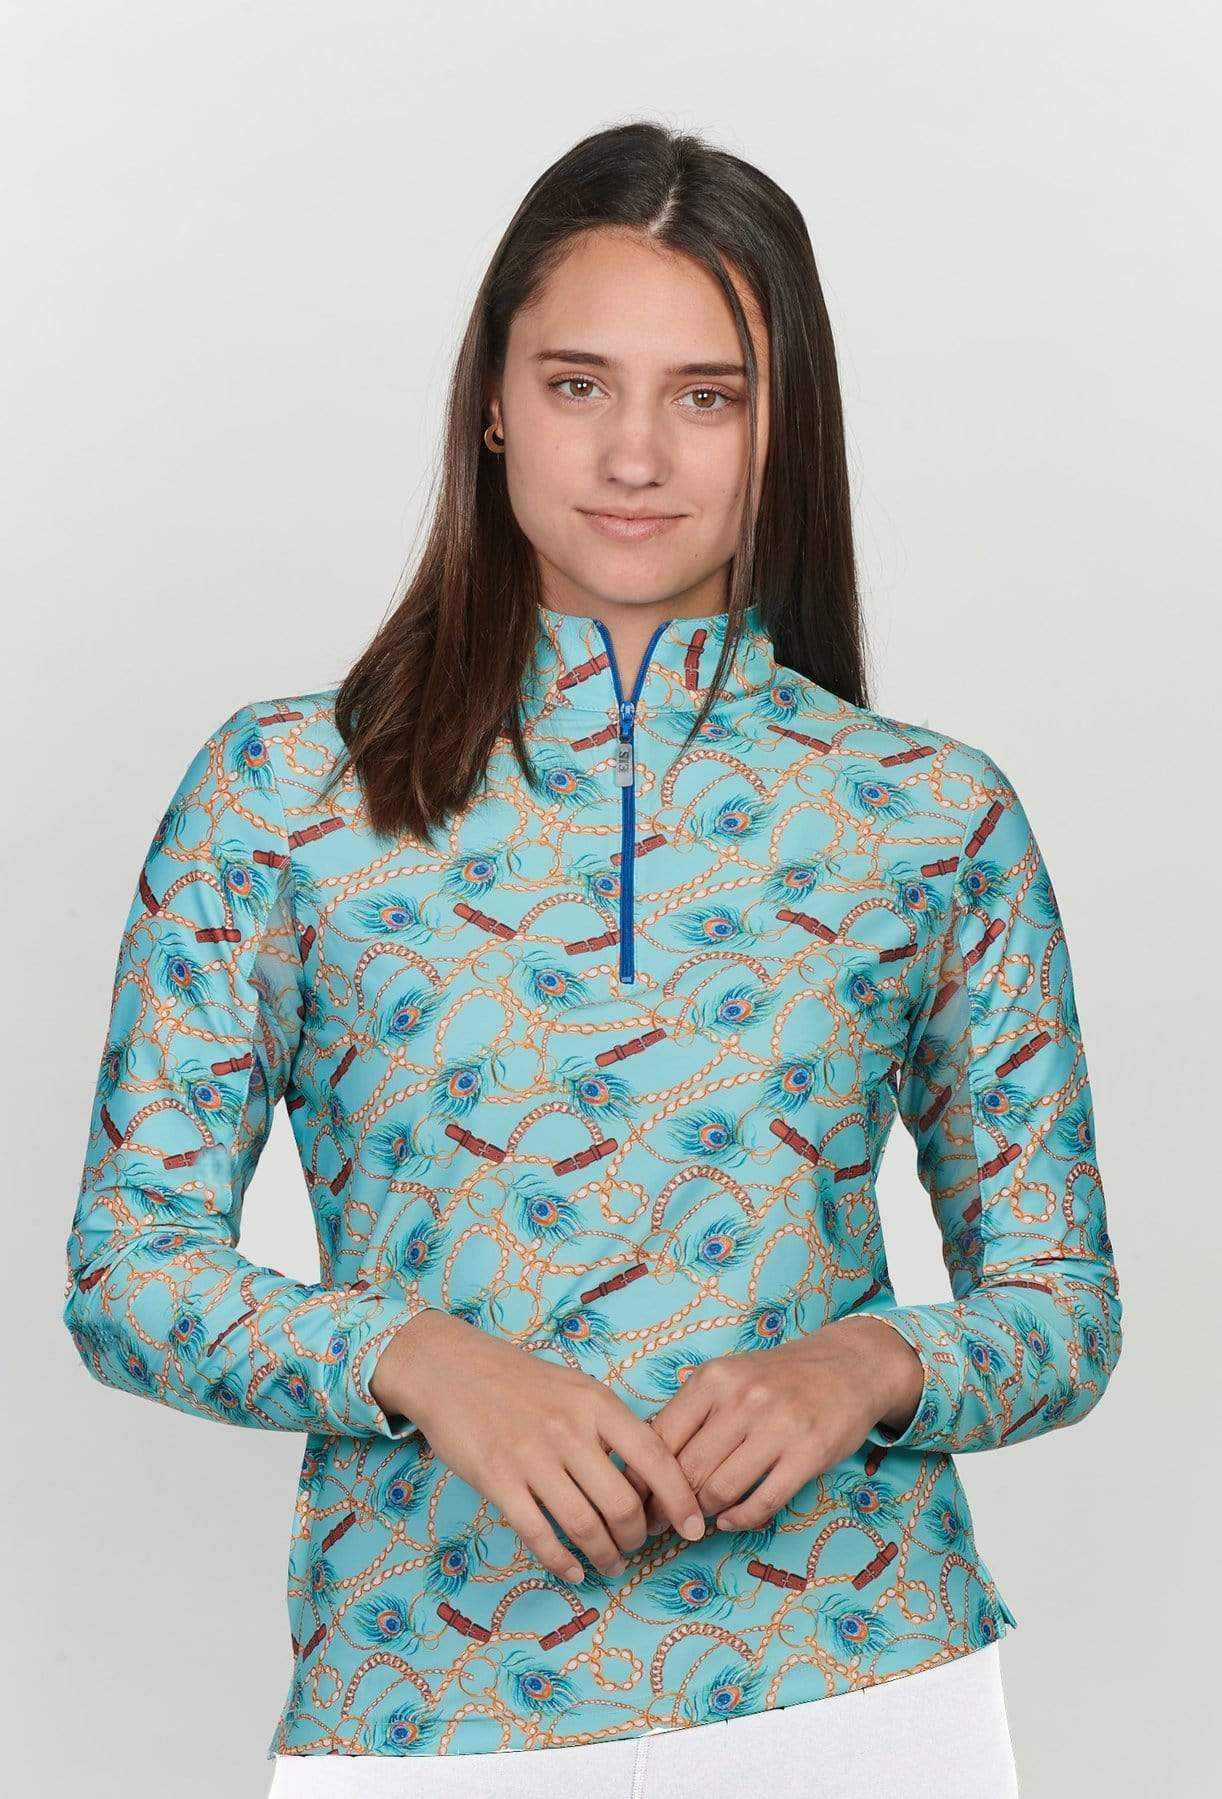 EIS Sunshirt EIS Peacock Patterned Sunshirt equestrian team apparel online tack store mobile tack store custom farm apparel custom show stable clothing equestrian lifestyle horse show clothing riding clothes horses equestrian tack store